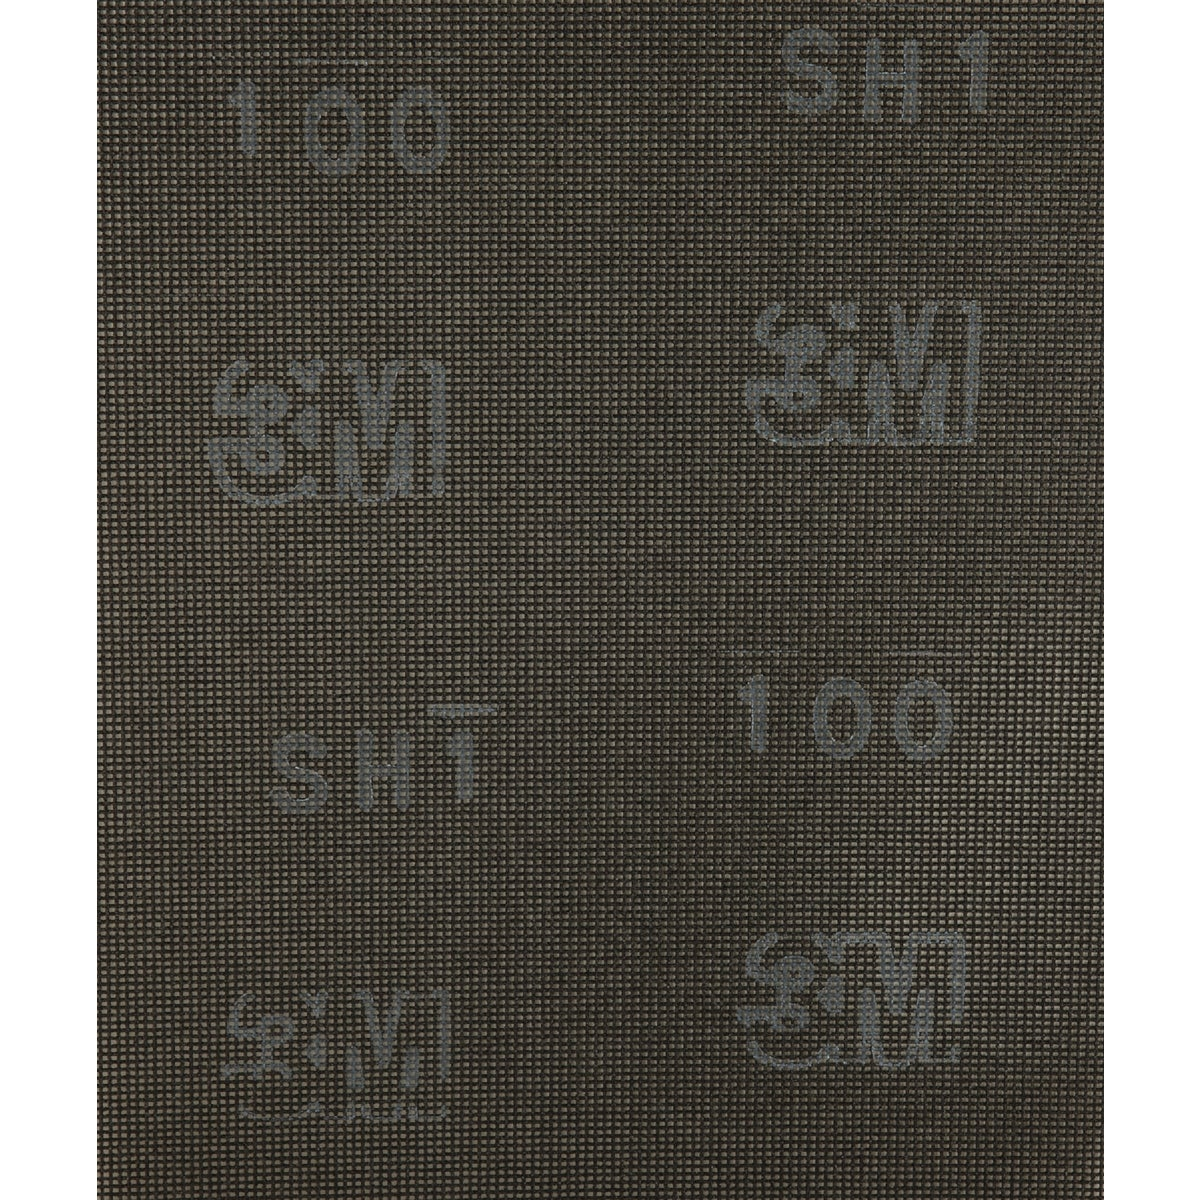 100G SCREENBACK SHEET